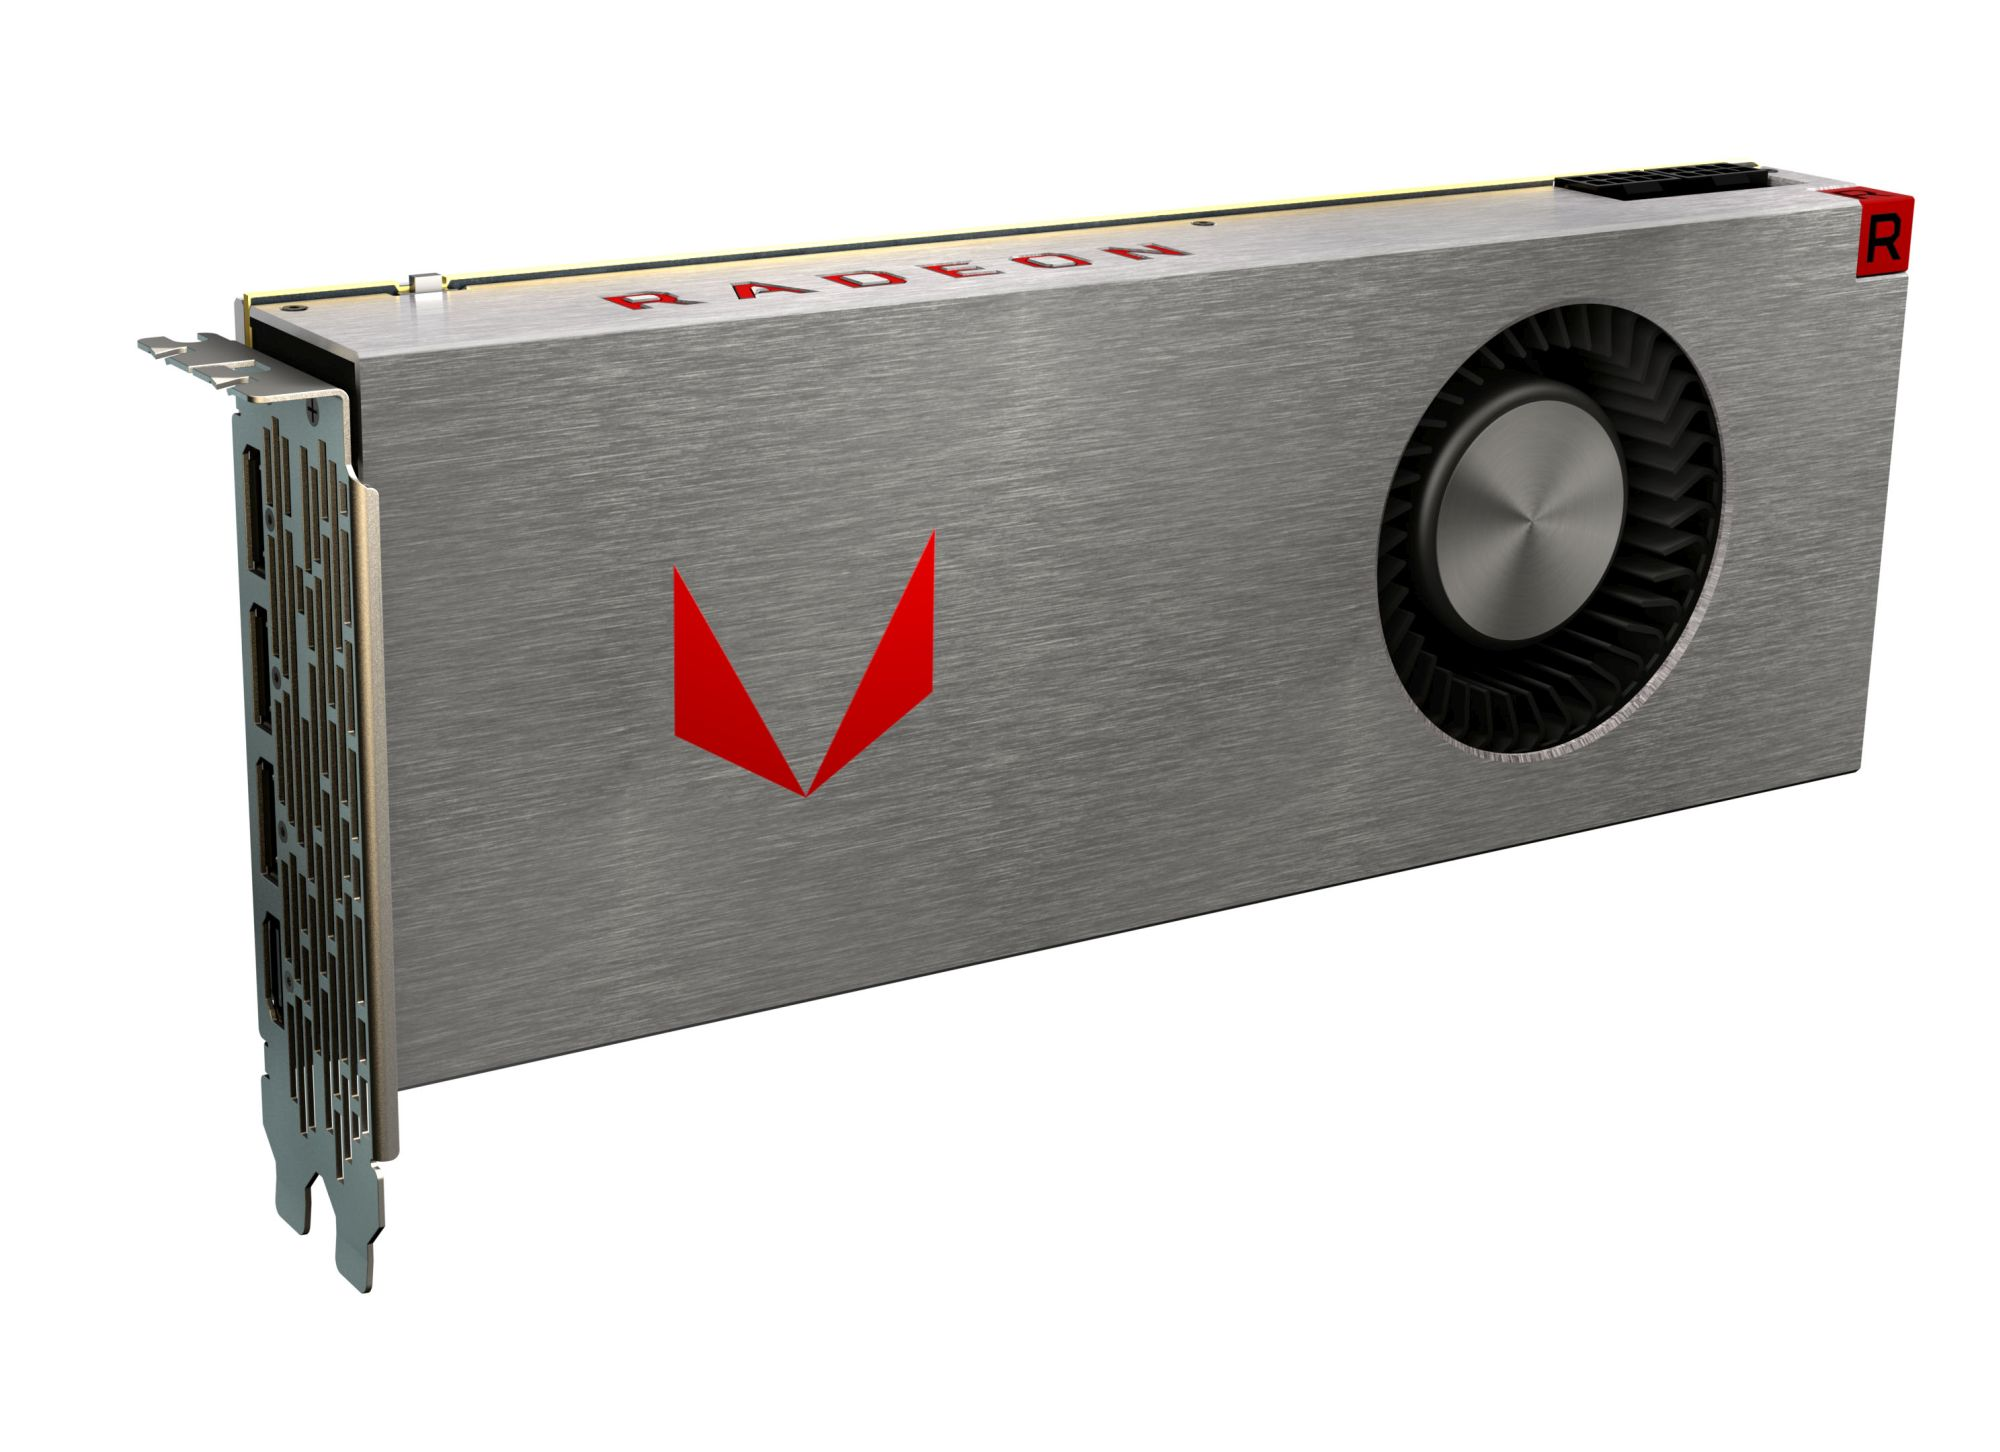 21275-01_RX_Vega_LIMITED_EDITION_8GB_HDMI_3DP_C03